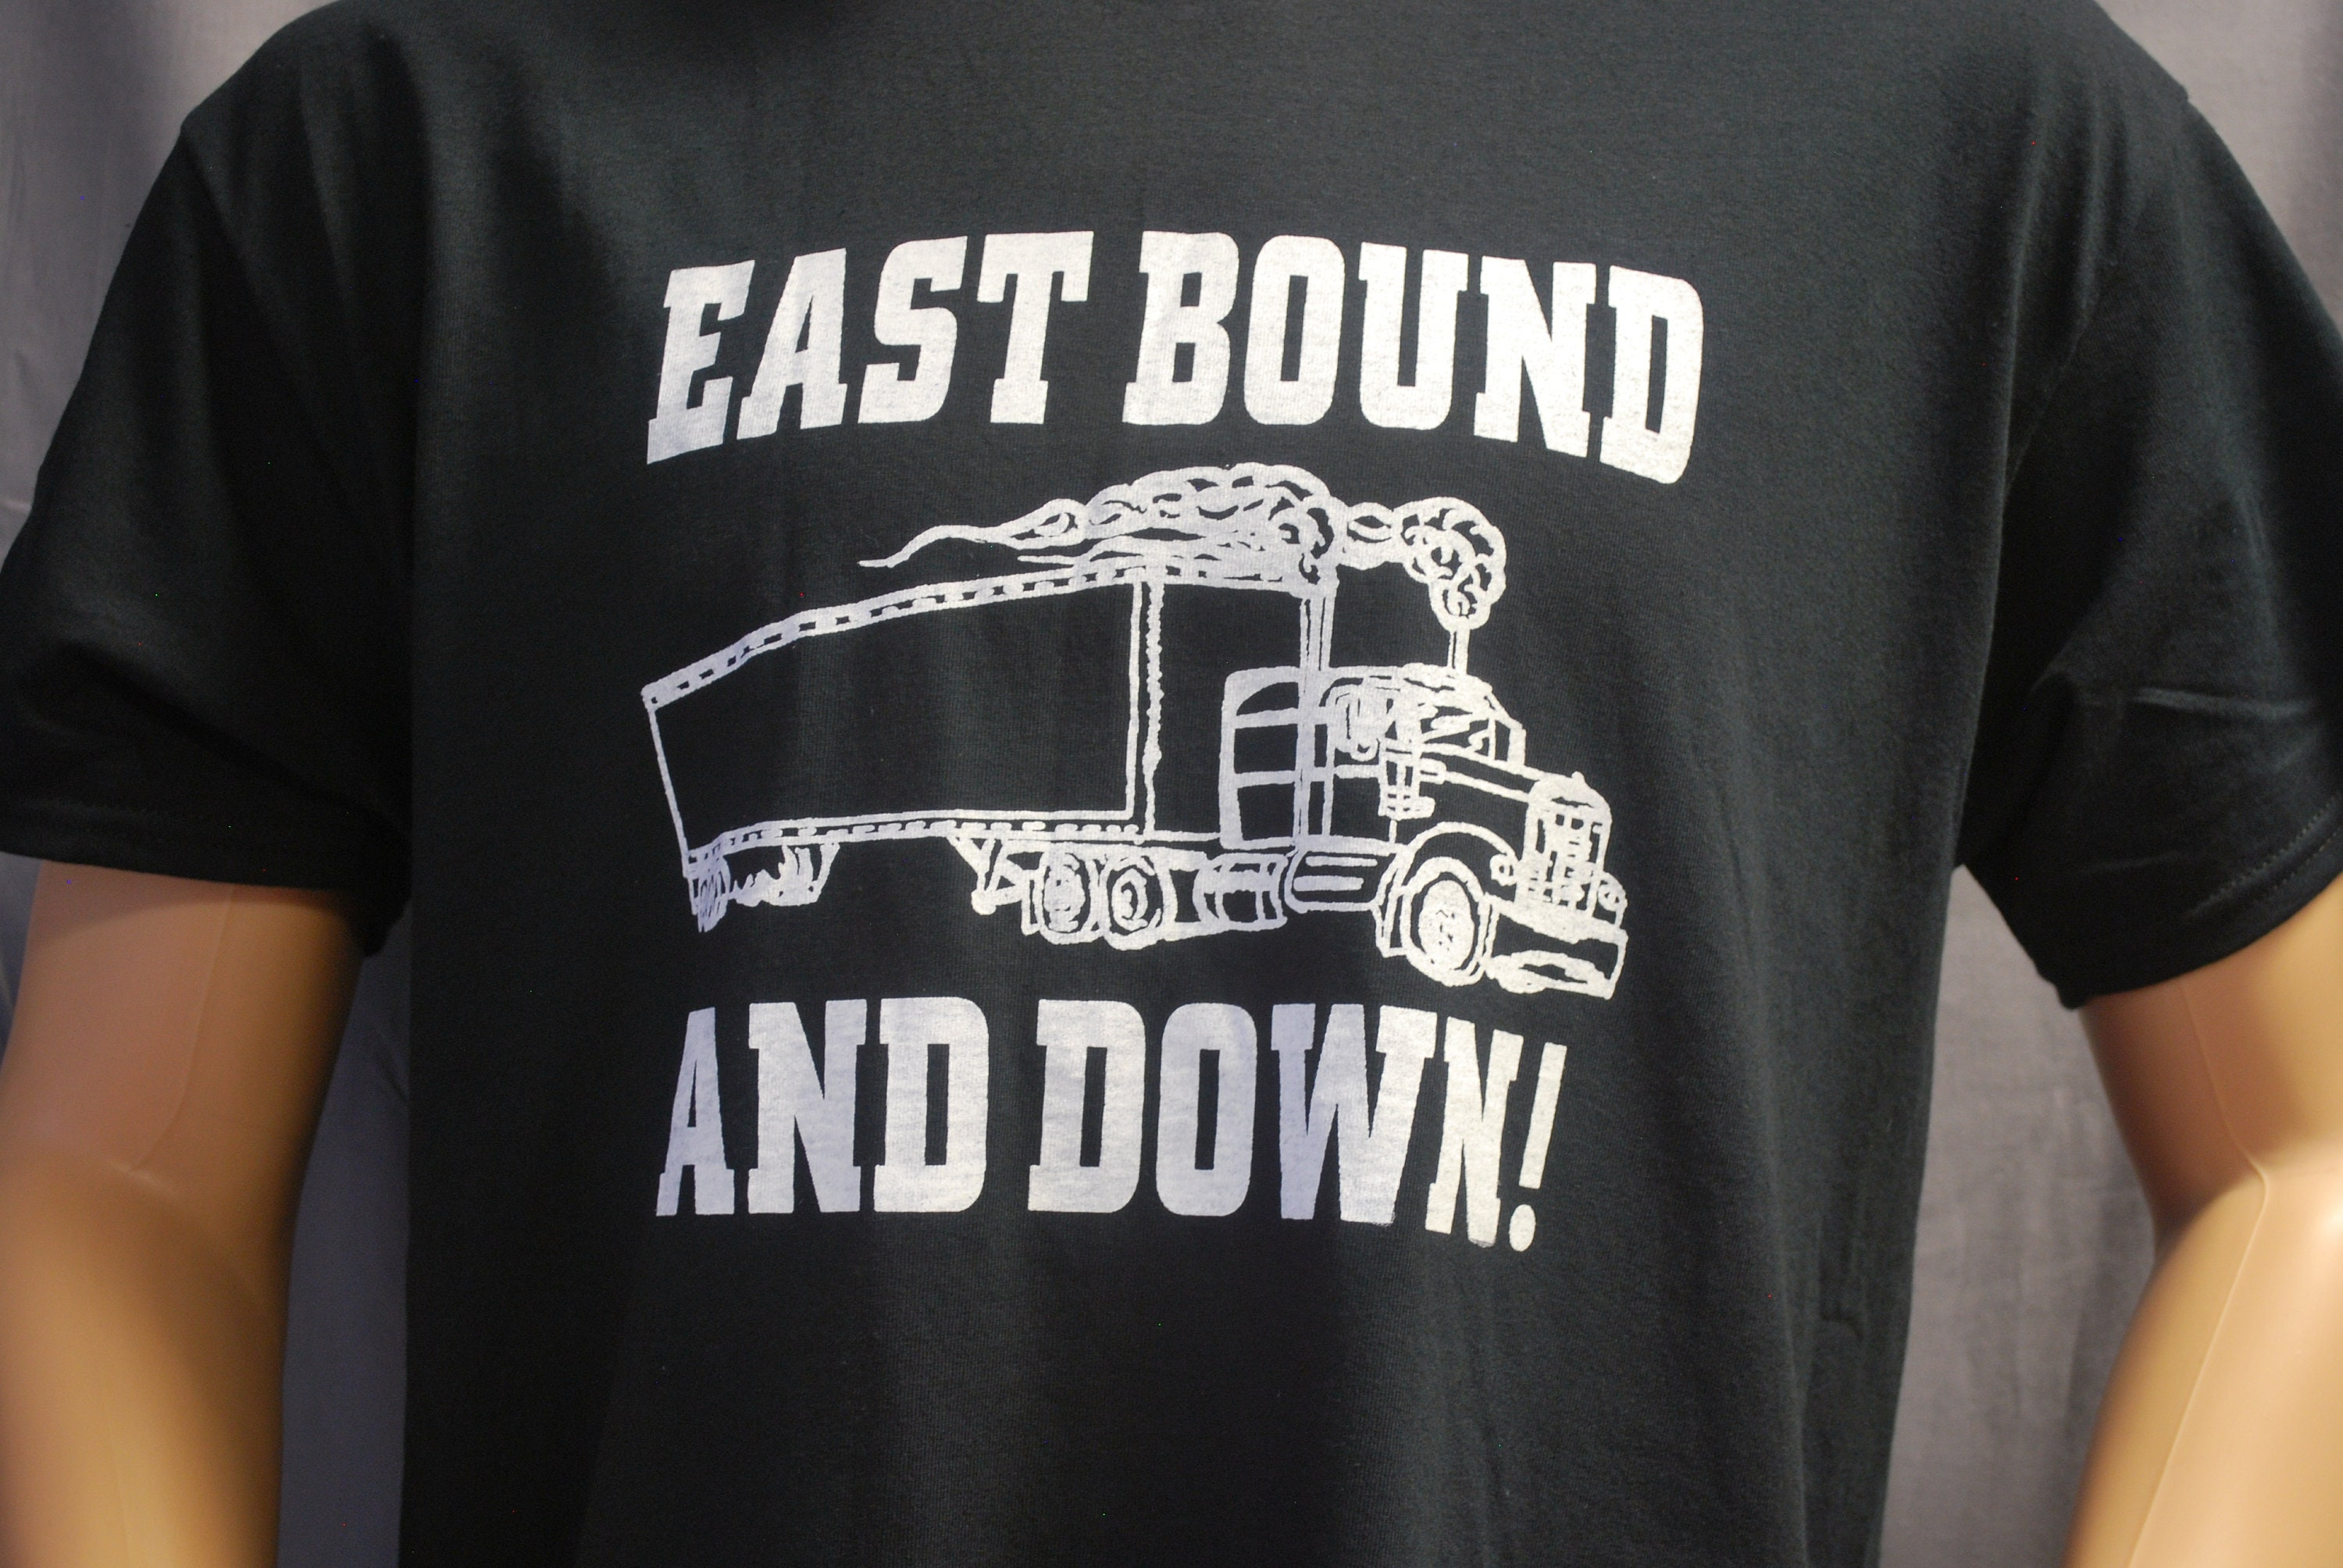 1950s Men's Ties, Bow Ties – Vintage, Skinny, Knit T-Shirt East Bound  Down Adult Mens Tee By Race City Retro Vintage Rockabilly Tractor Trailer Smokey  The Bandit Kenworth Mack Beer Gift $16.95 AT vintagedancer.com